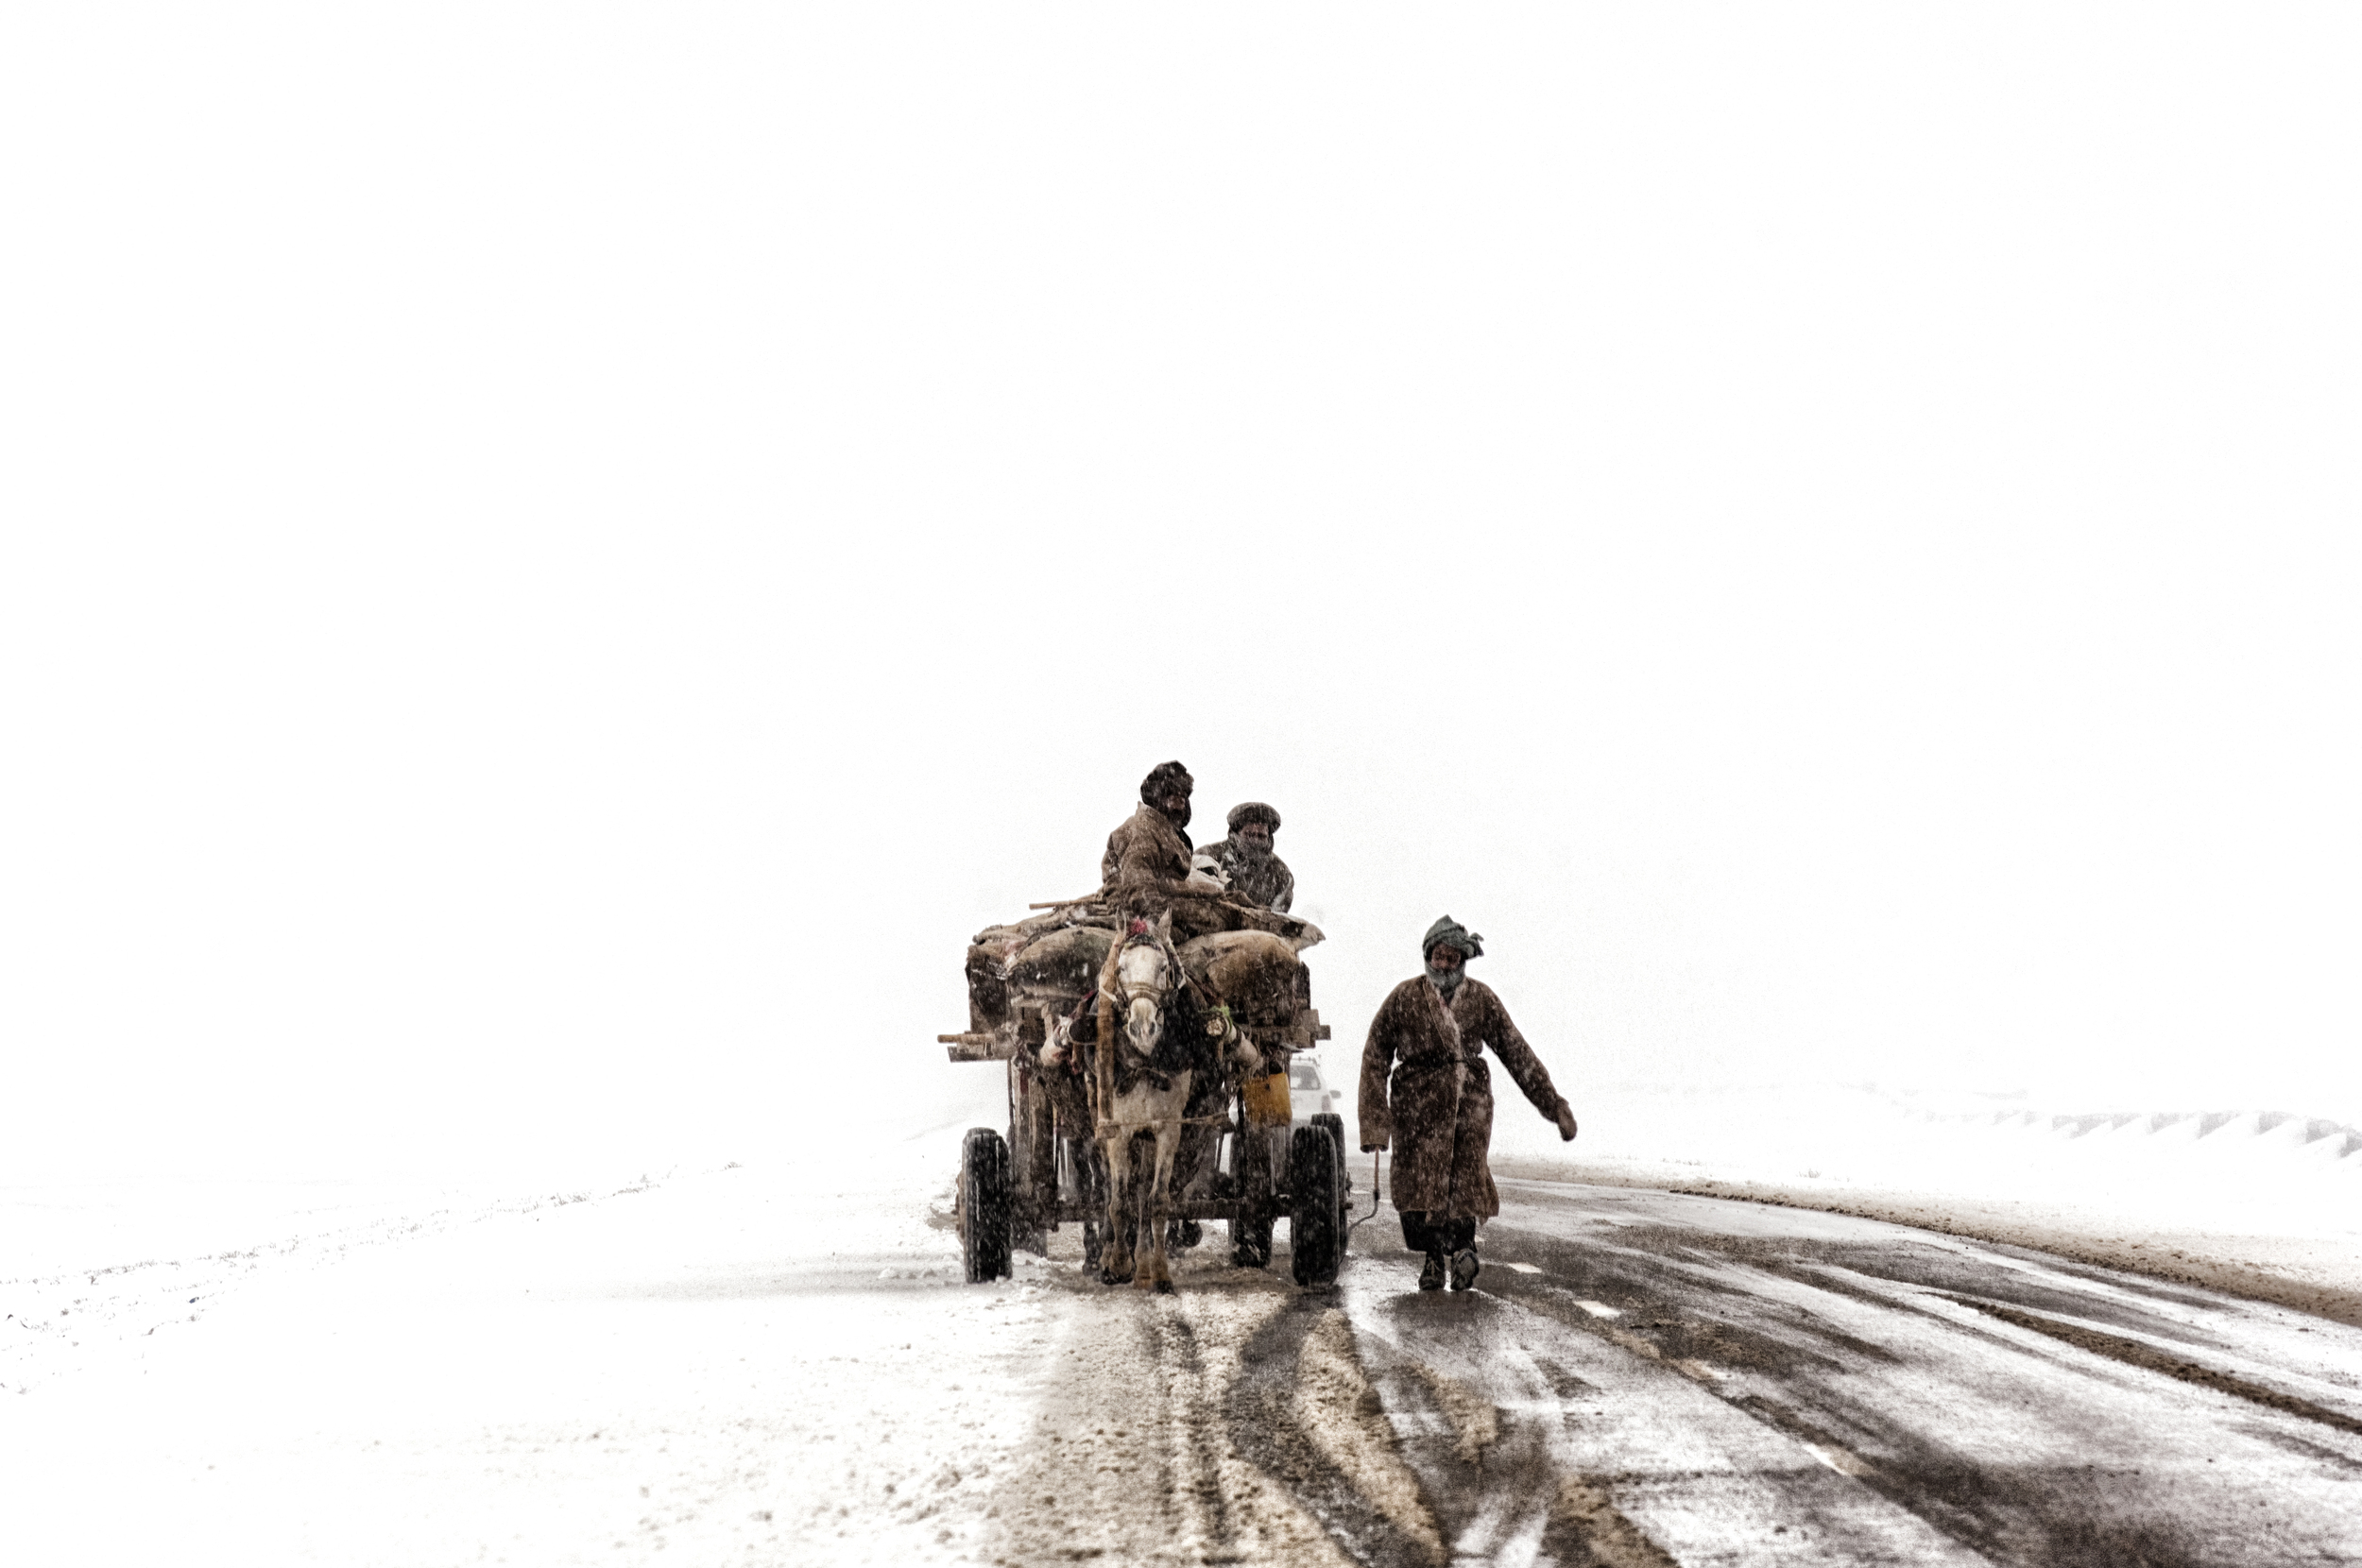 More than 900 people werekilled across Afghanistan as the country suffered from one of its harshest ever winters in 2008. Below freezing temperatures and bitter snow storms gripped the nation since the onset of winter in mid December. At its peak temperatures in the region fell to -22C (-8F); the coldest in more than 30 years. Nearly half the villages in western Afghanistan had been cut off from the major cities due to heavy snowfall, which reached 2 meters (79 inches) deep in some places.